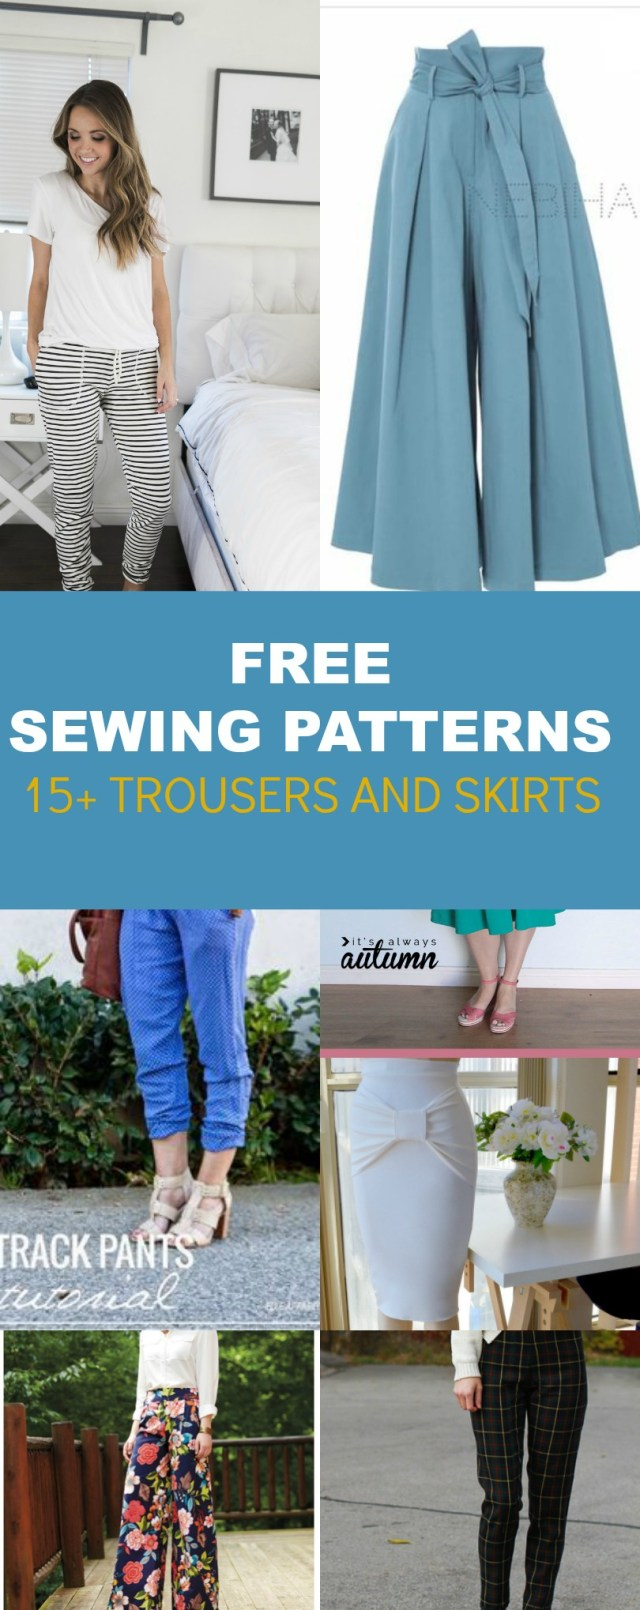 Free Sewing Pattern Free Pattern Alert 15 Pants And Skirts Sewing Tutorials On The